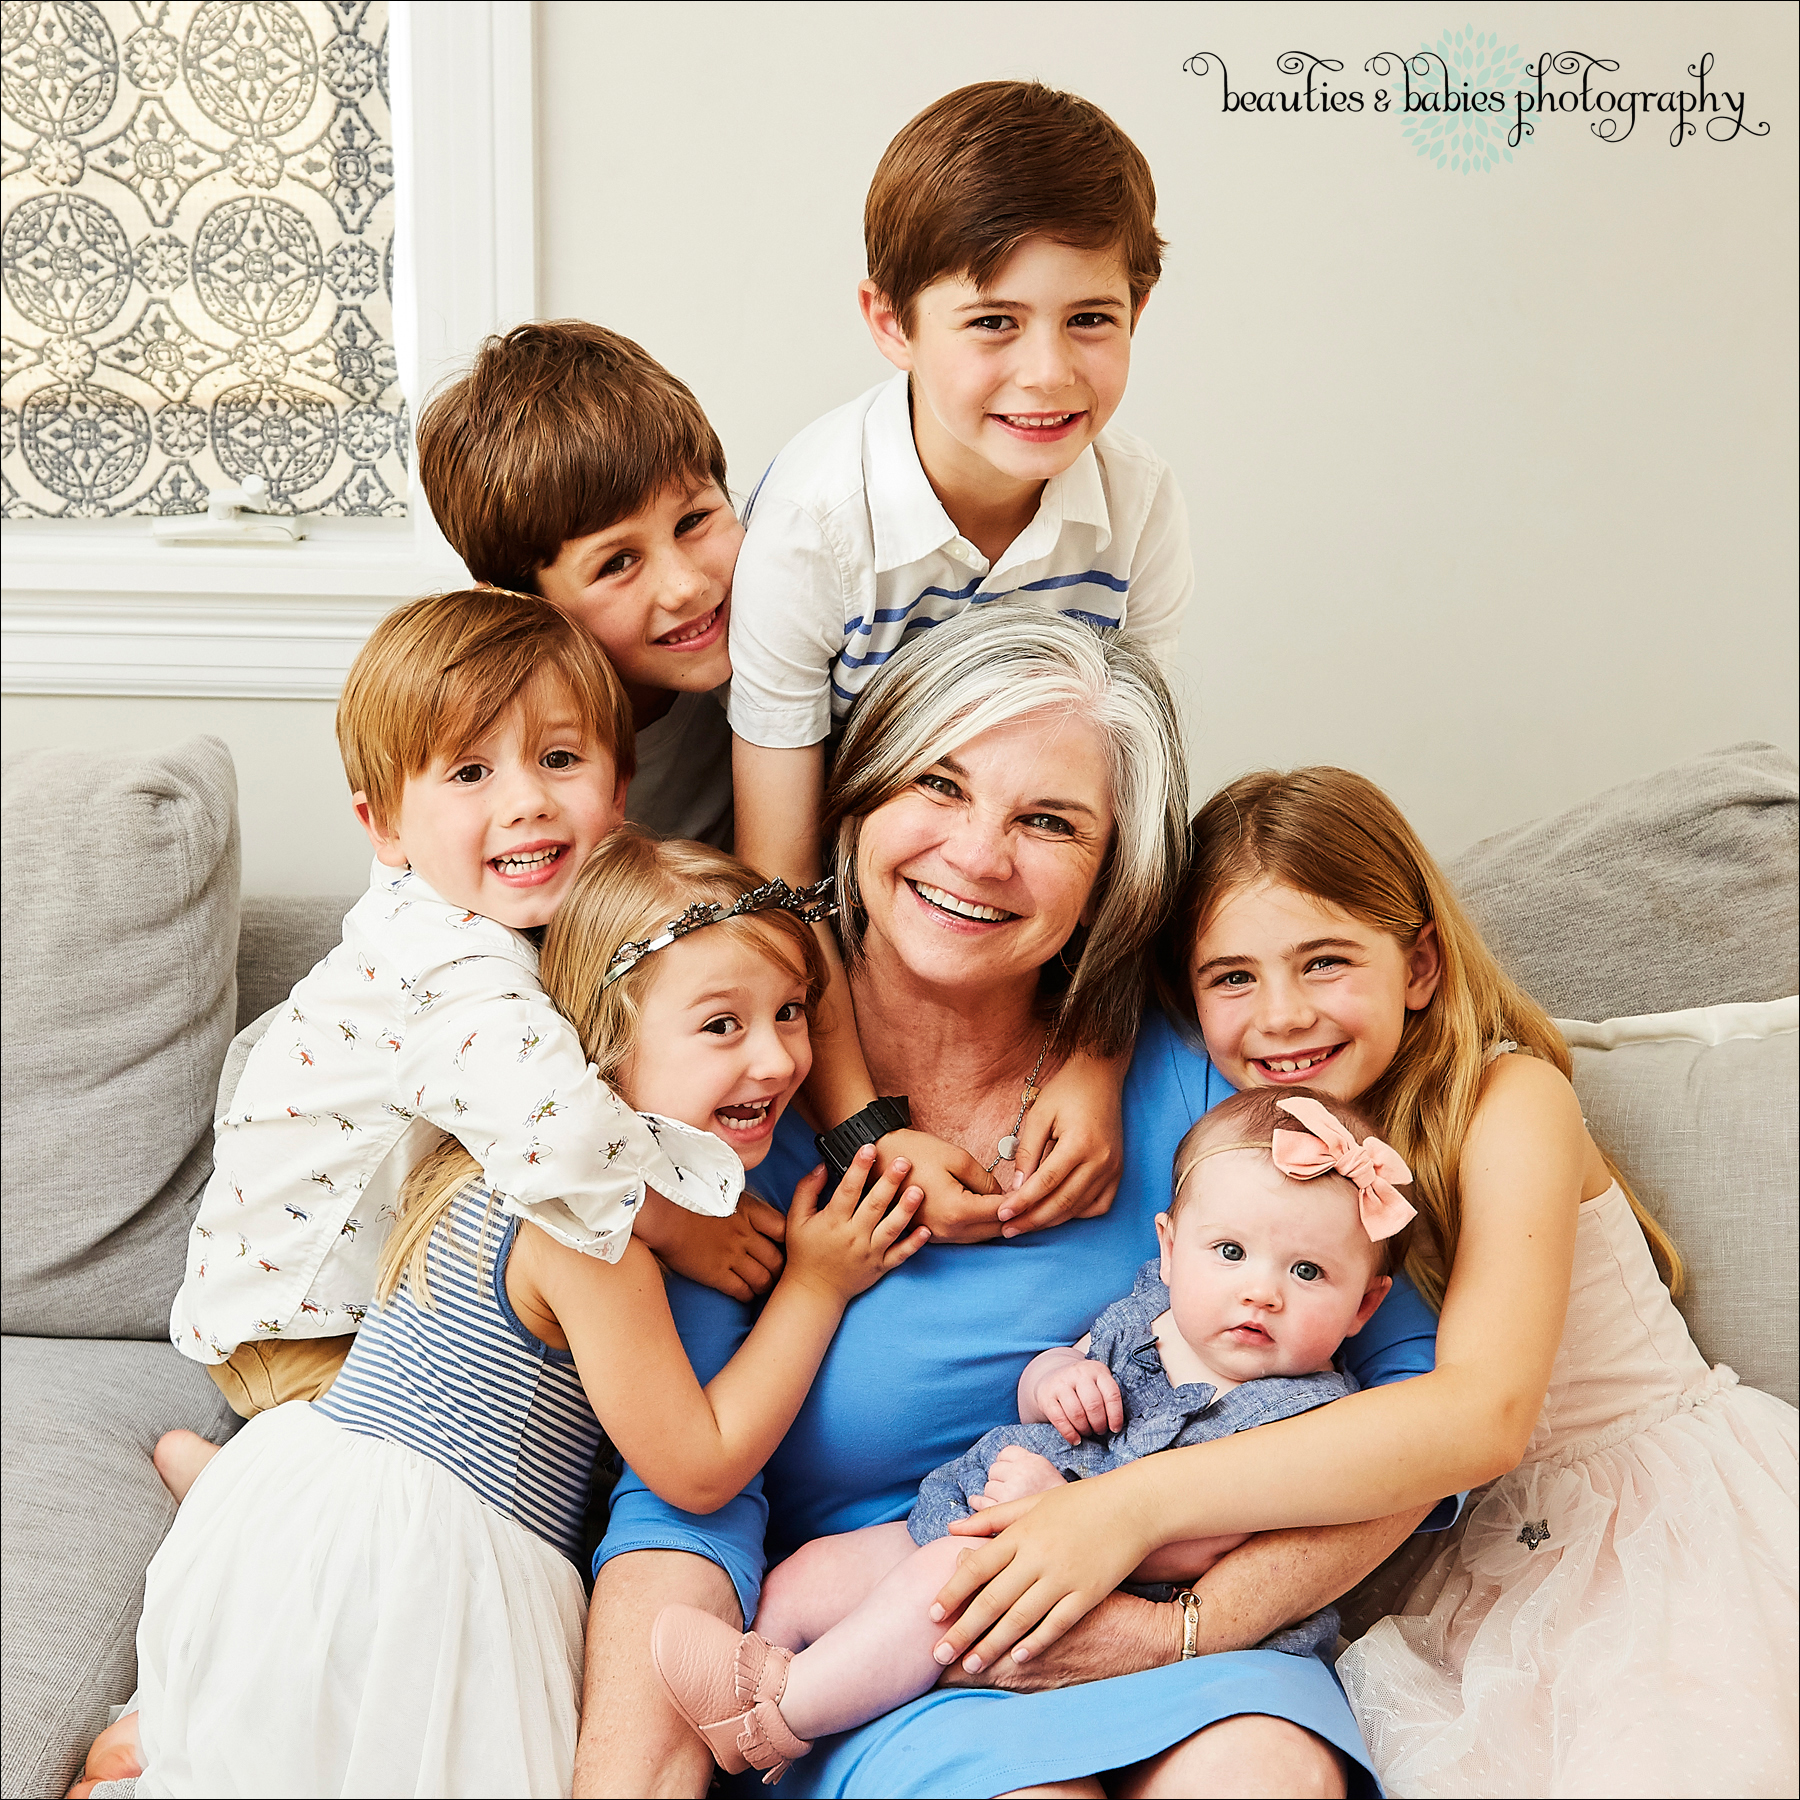 Personal photos by Beauties And Babies photography Los Angeles Photographer